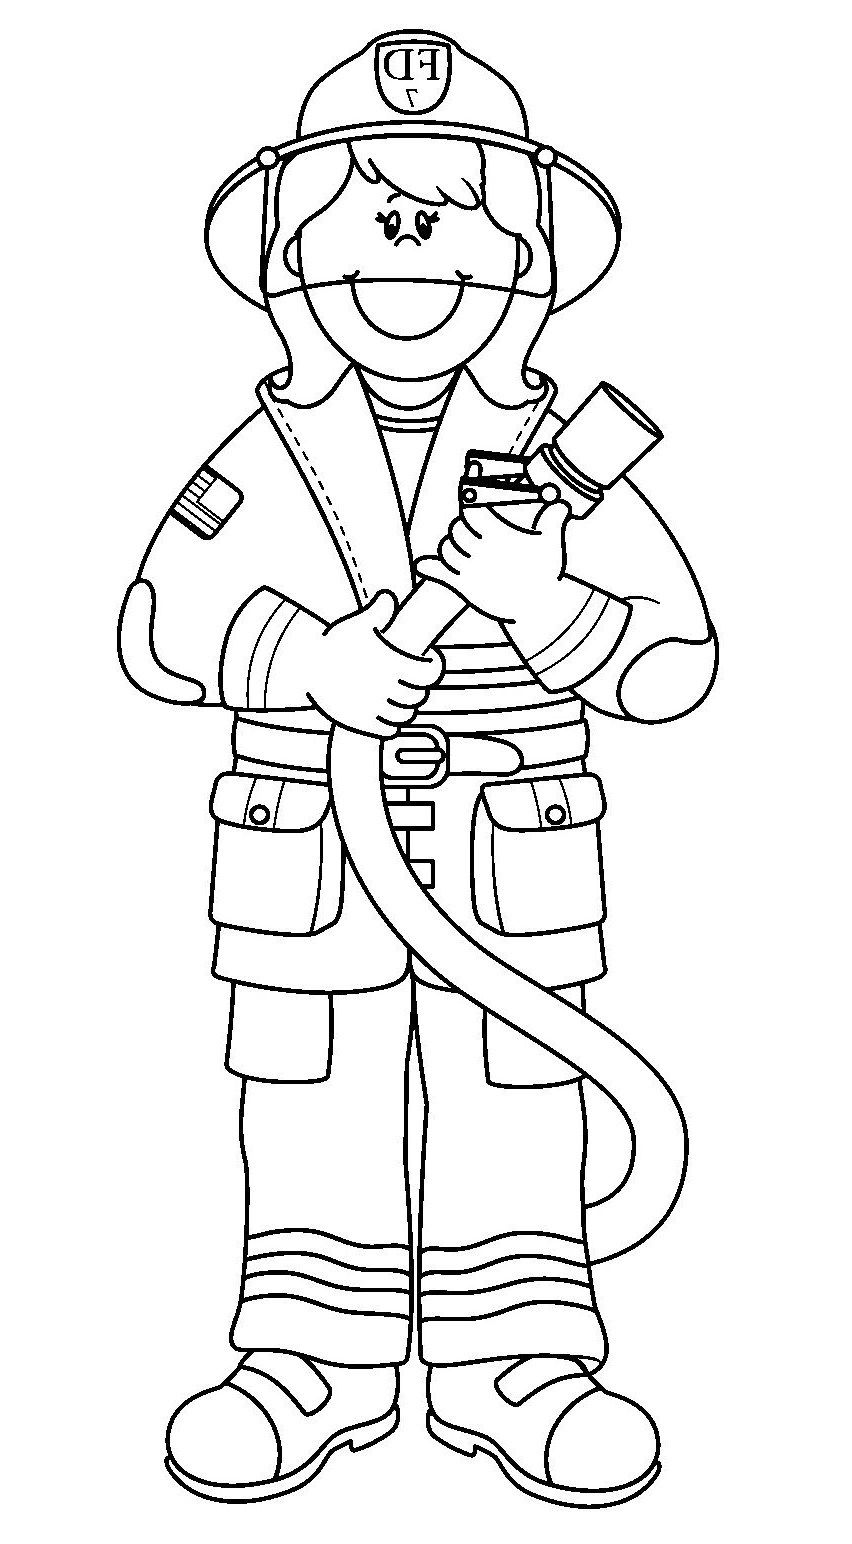 25 Amazing Image Of Fireman Coloring Pages Davemelillo Com Cartoon Coloring Pages Firefighter Clipart Coloring Pages